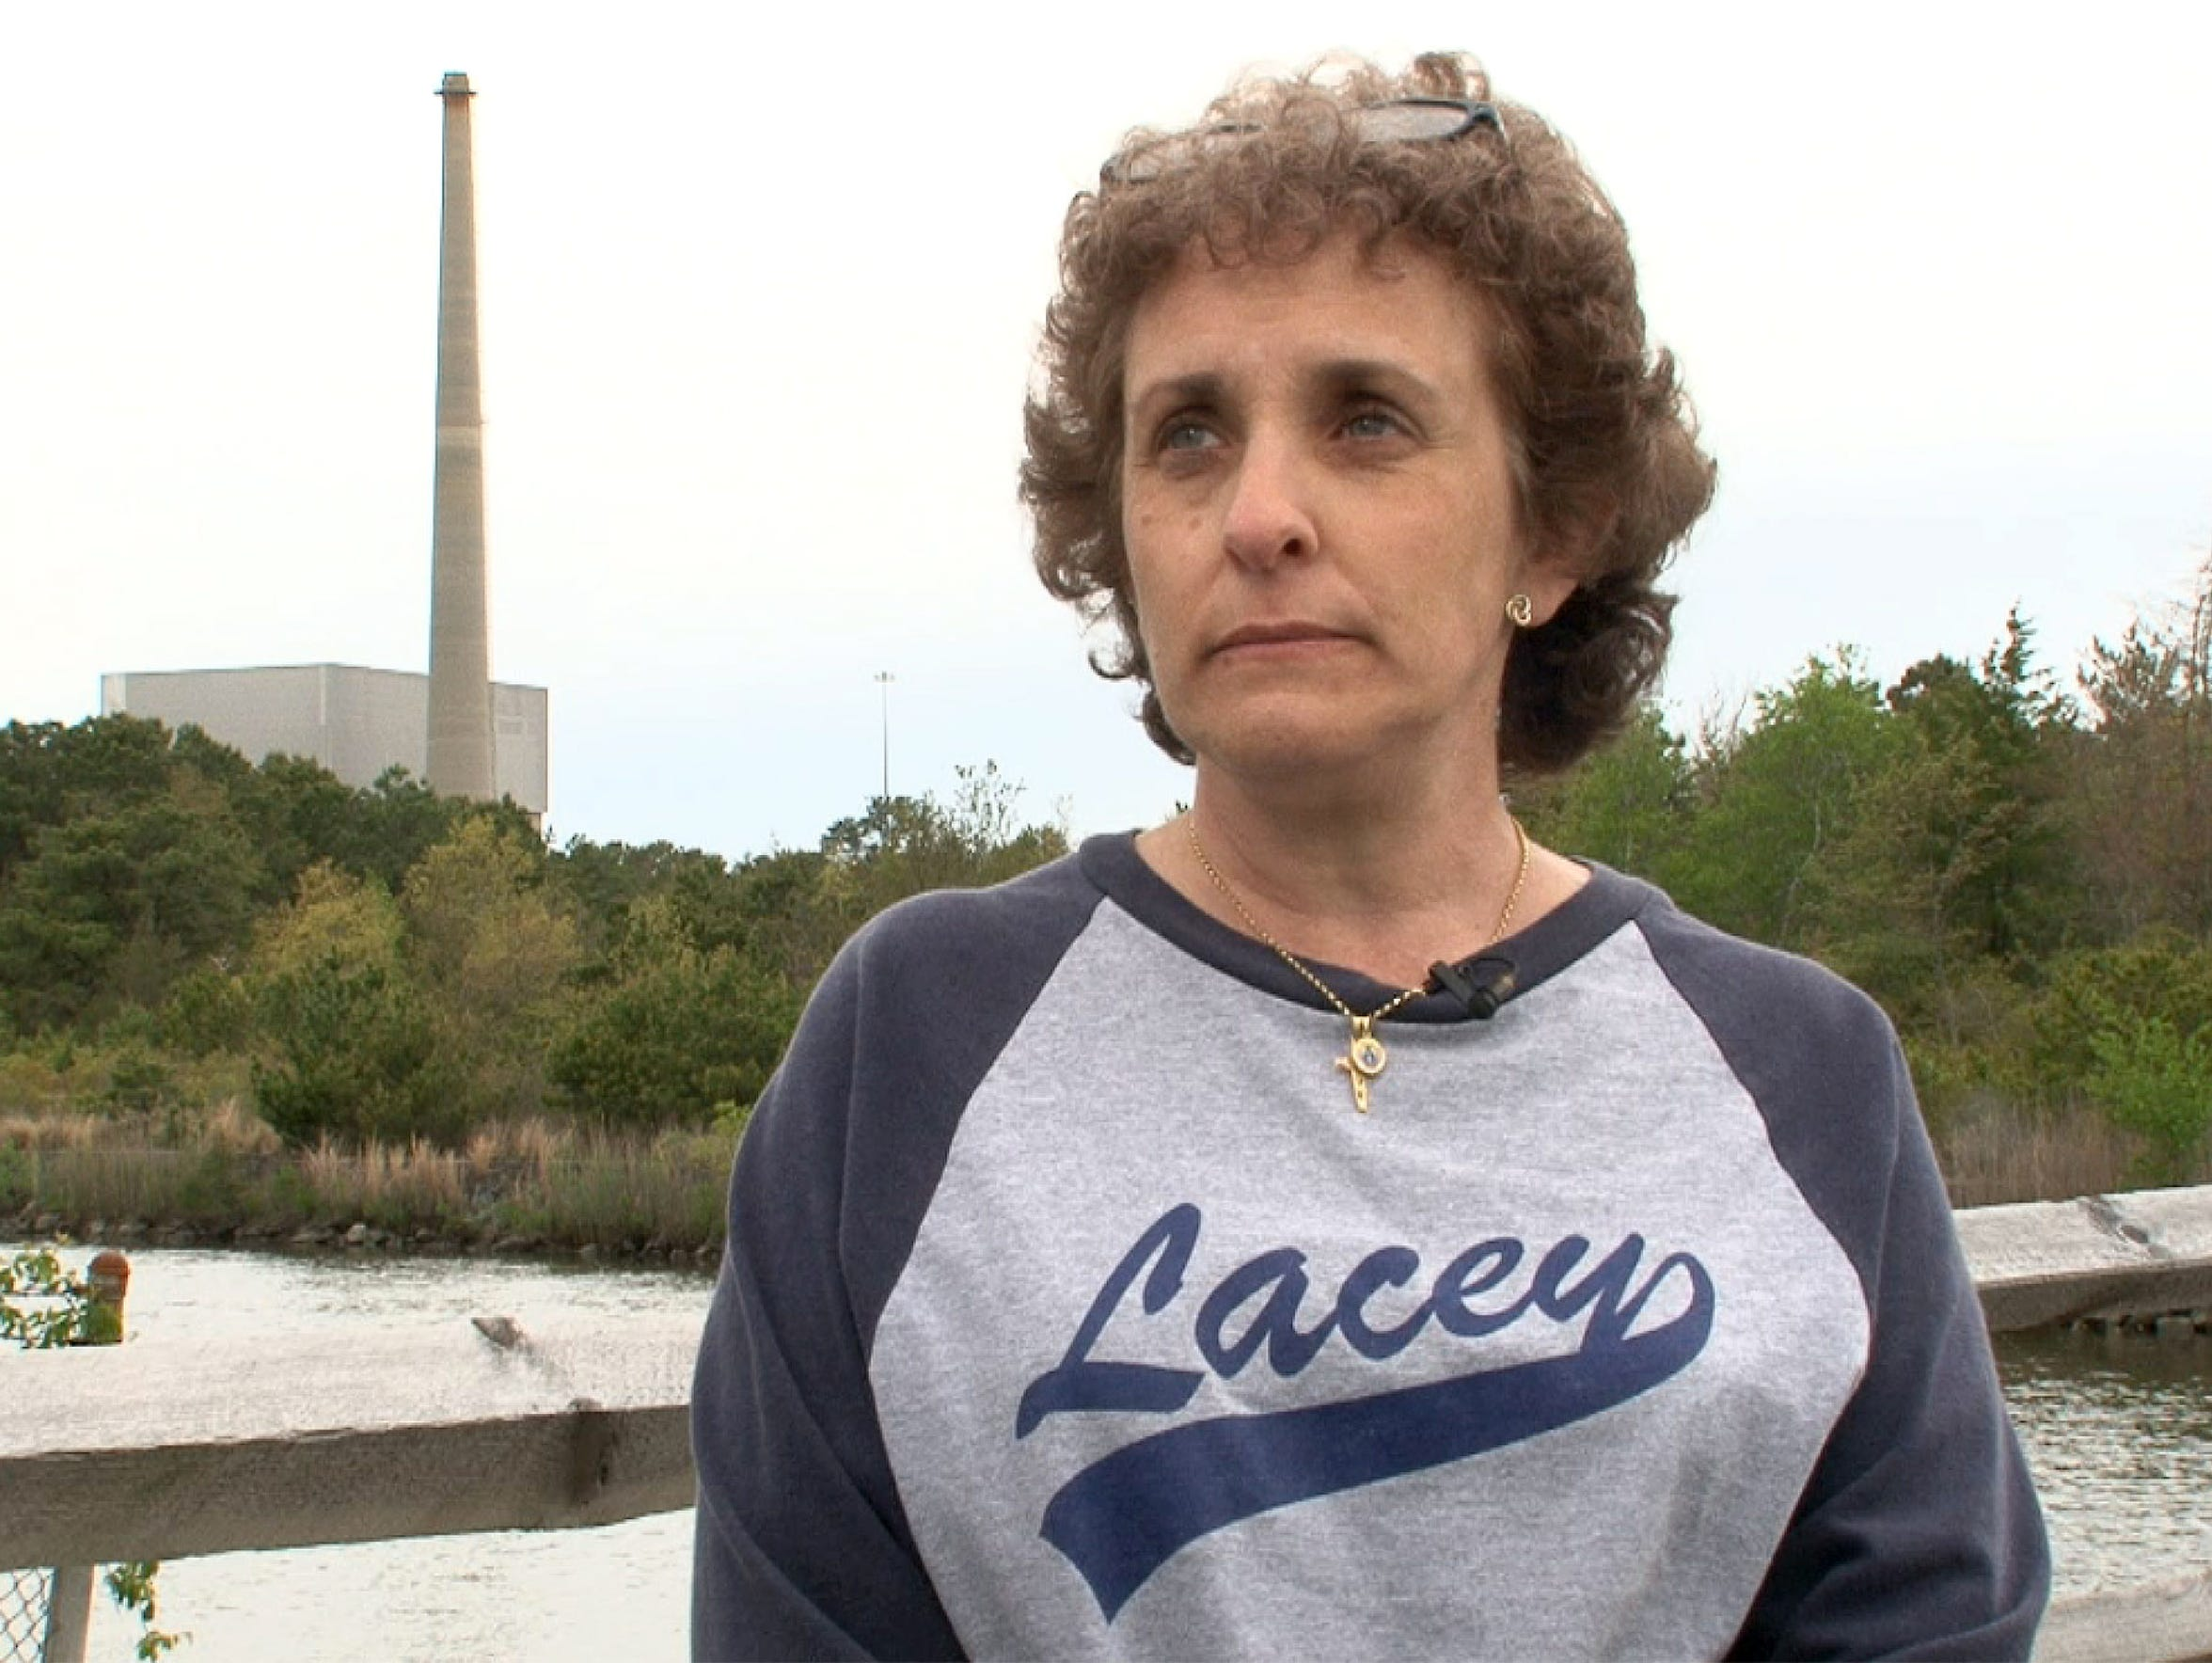 Lacey Township resident Regina Discenza is shown during